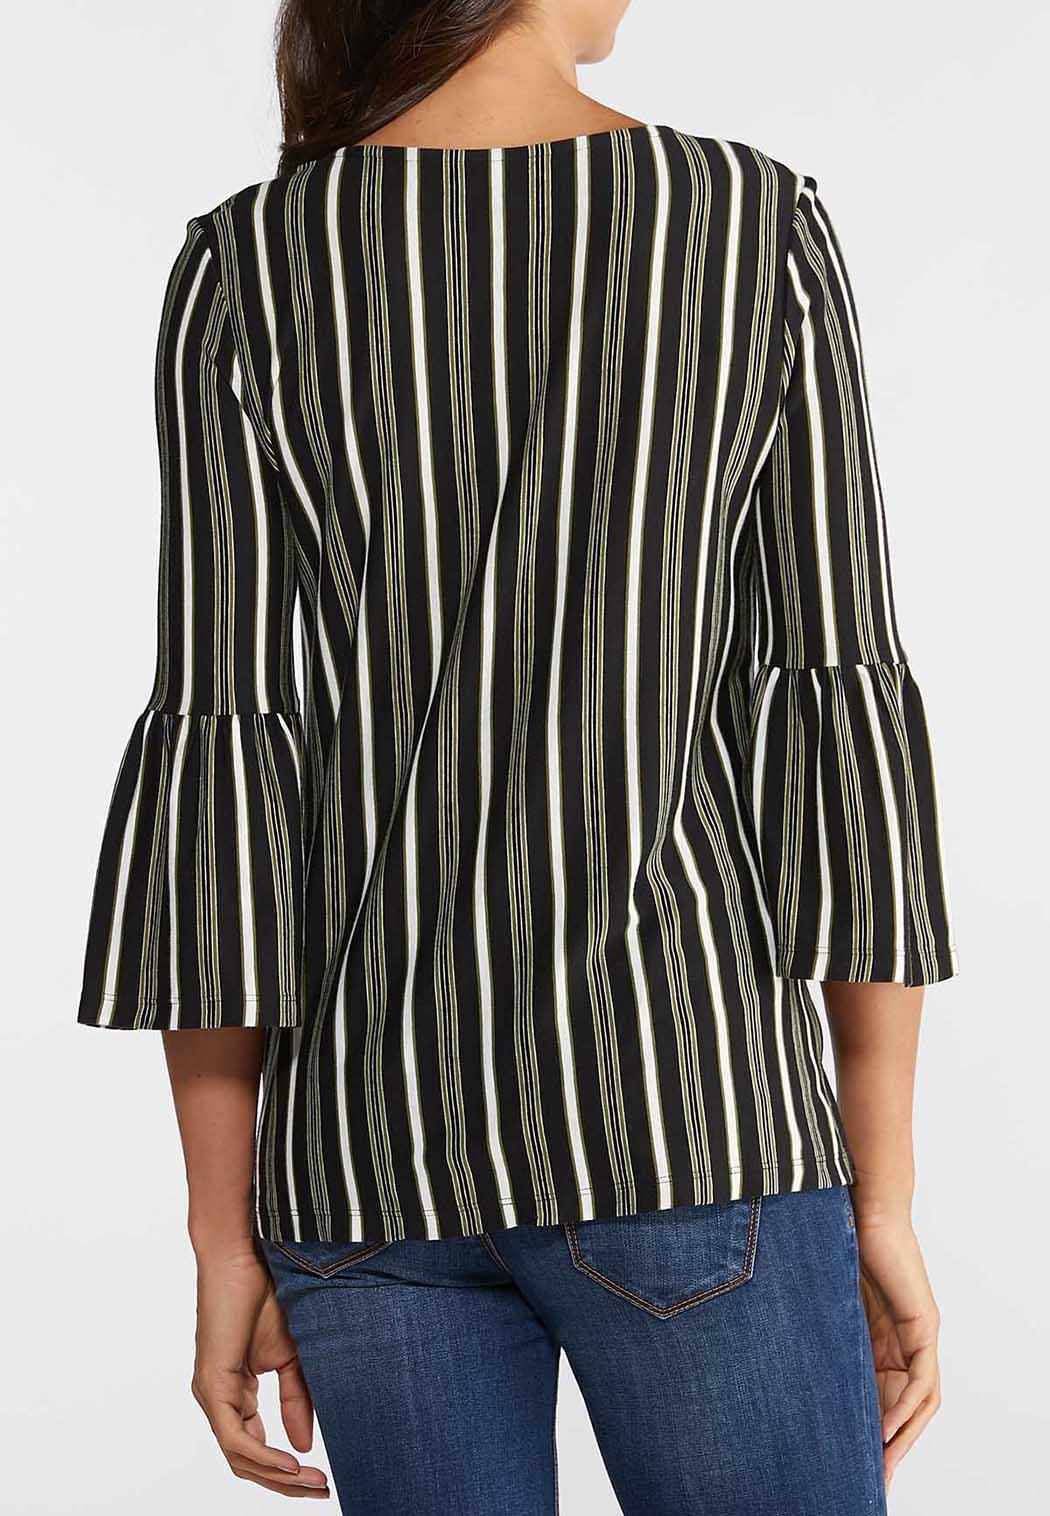 Plus Size Striped Bell Top (Item #43928443)